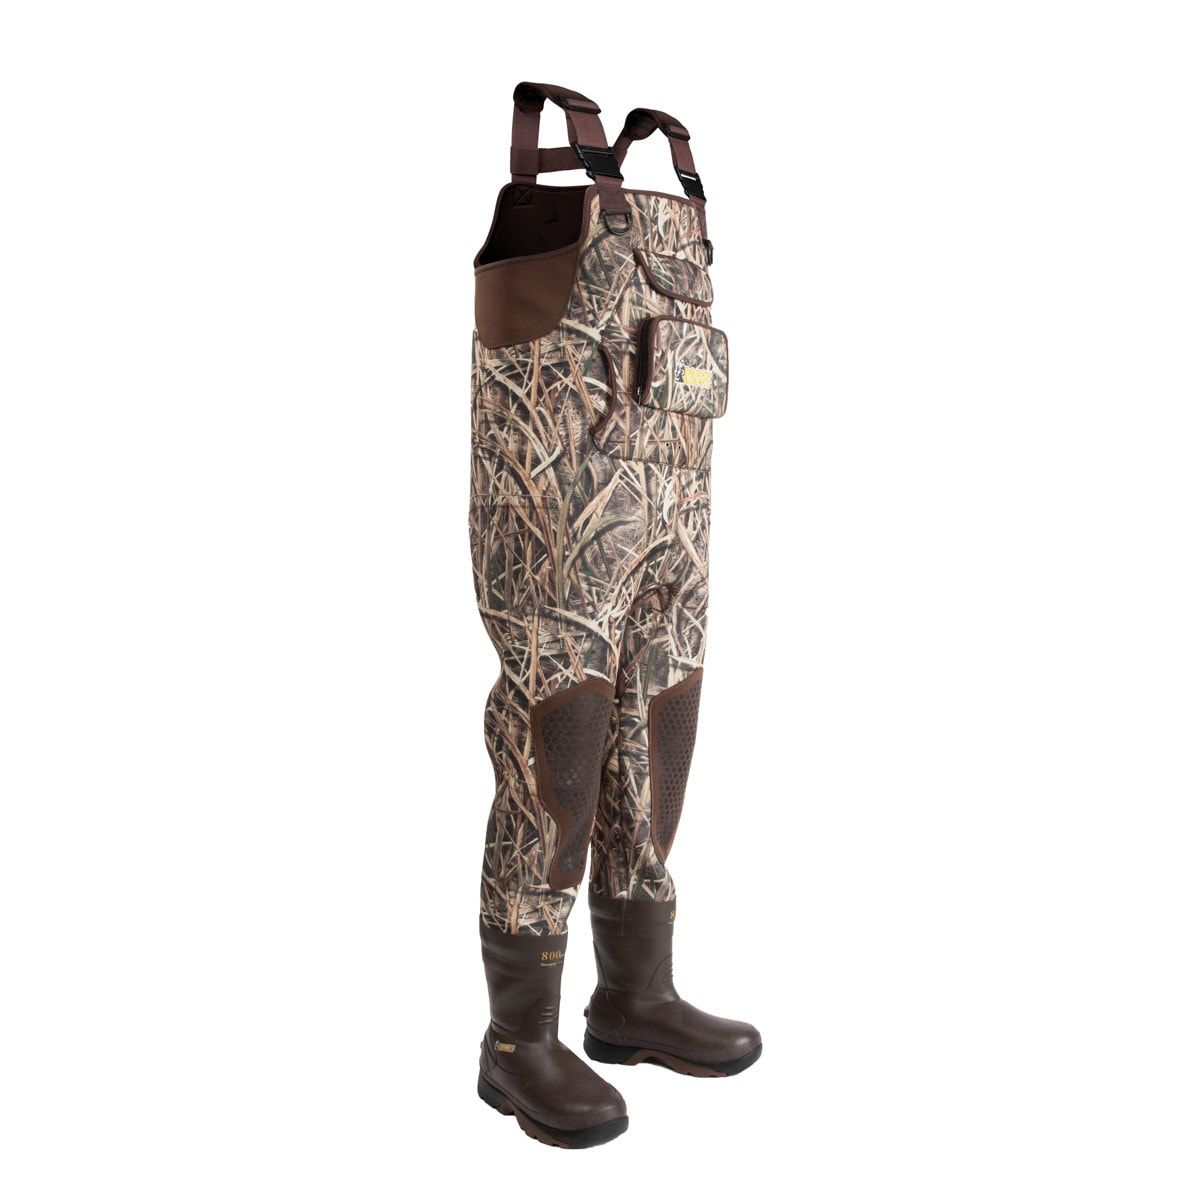 1200x1200 Rocky Waterfowler Mens Mossy Oak Neoprene Wp Insulated Hunting